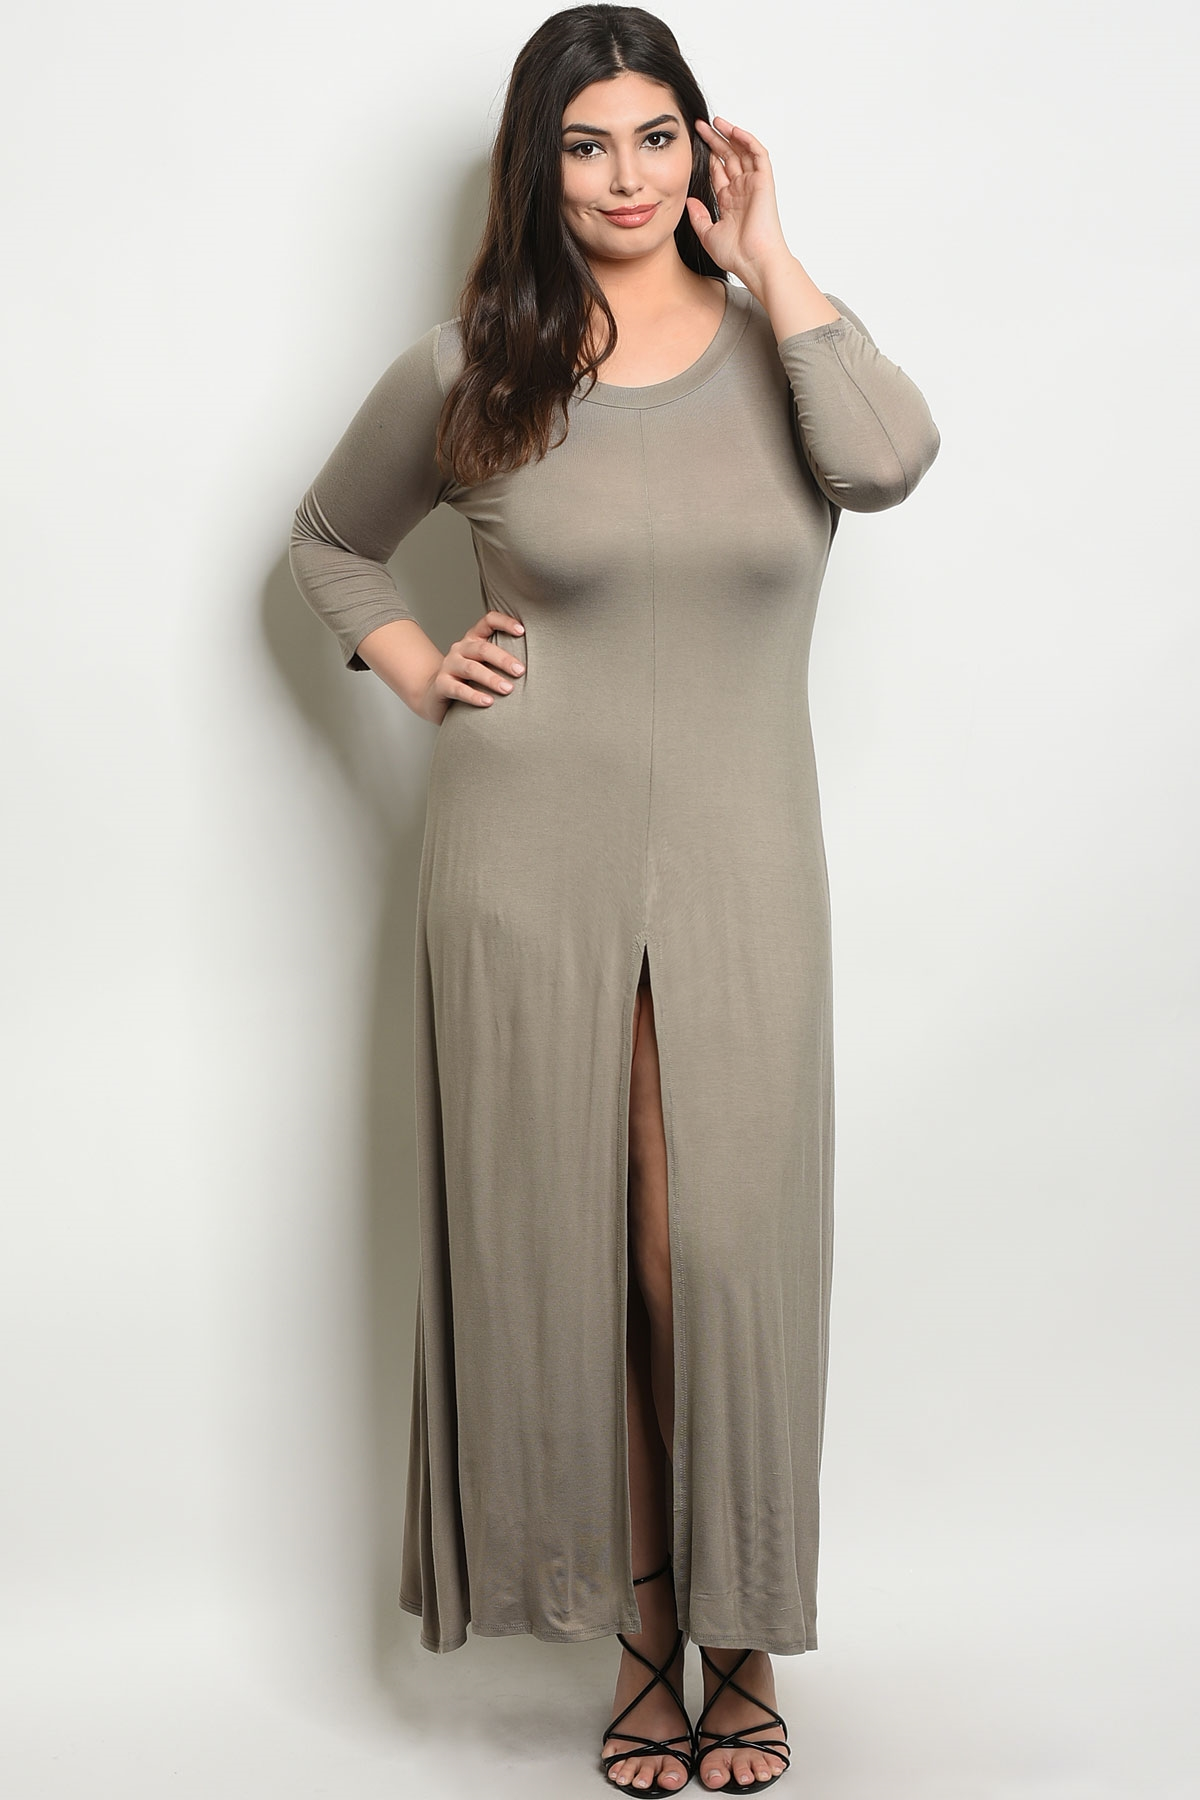 C55-A-7-T555X TAUPE PLUS SIZE DRESS 2-2-2